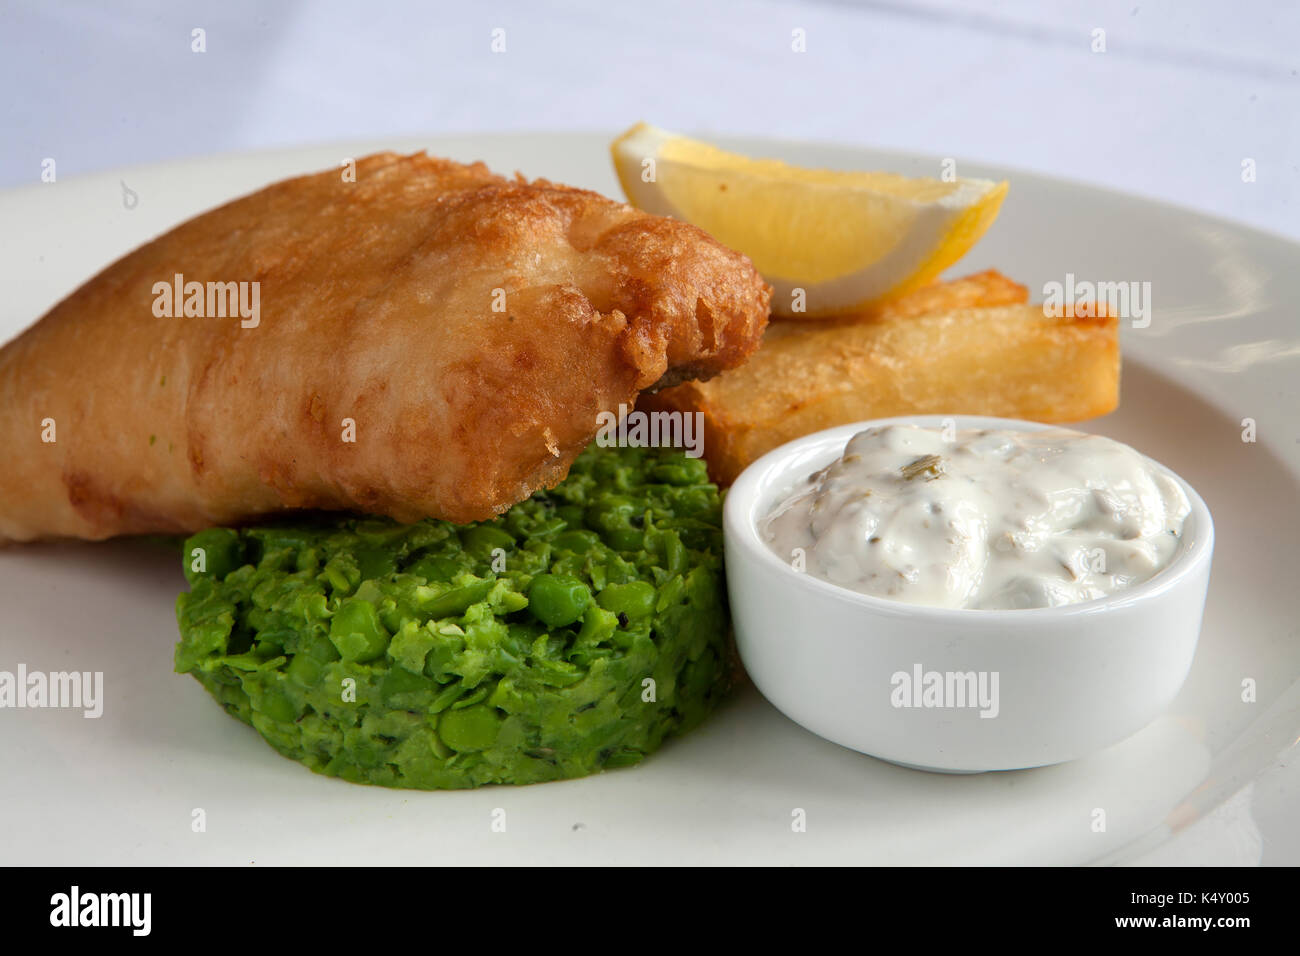 Battered fish and chips with mushy peas and tartar sauce on a plate - Stock Image